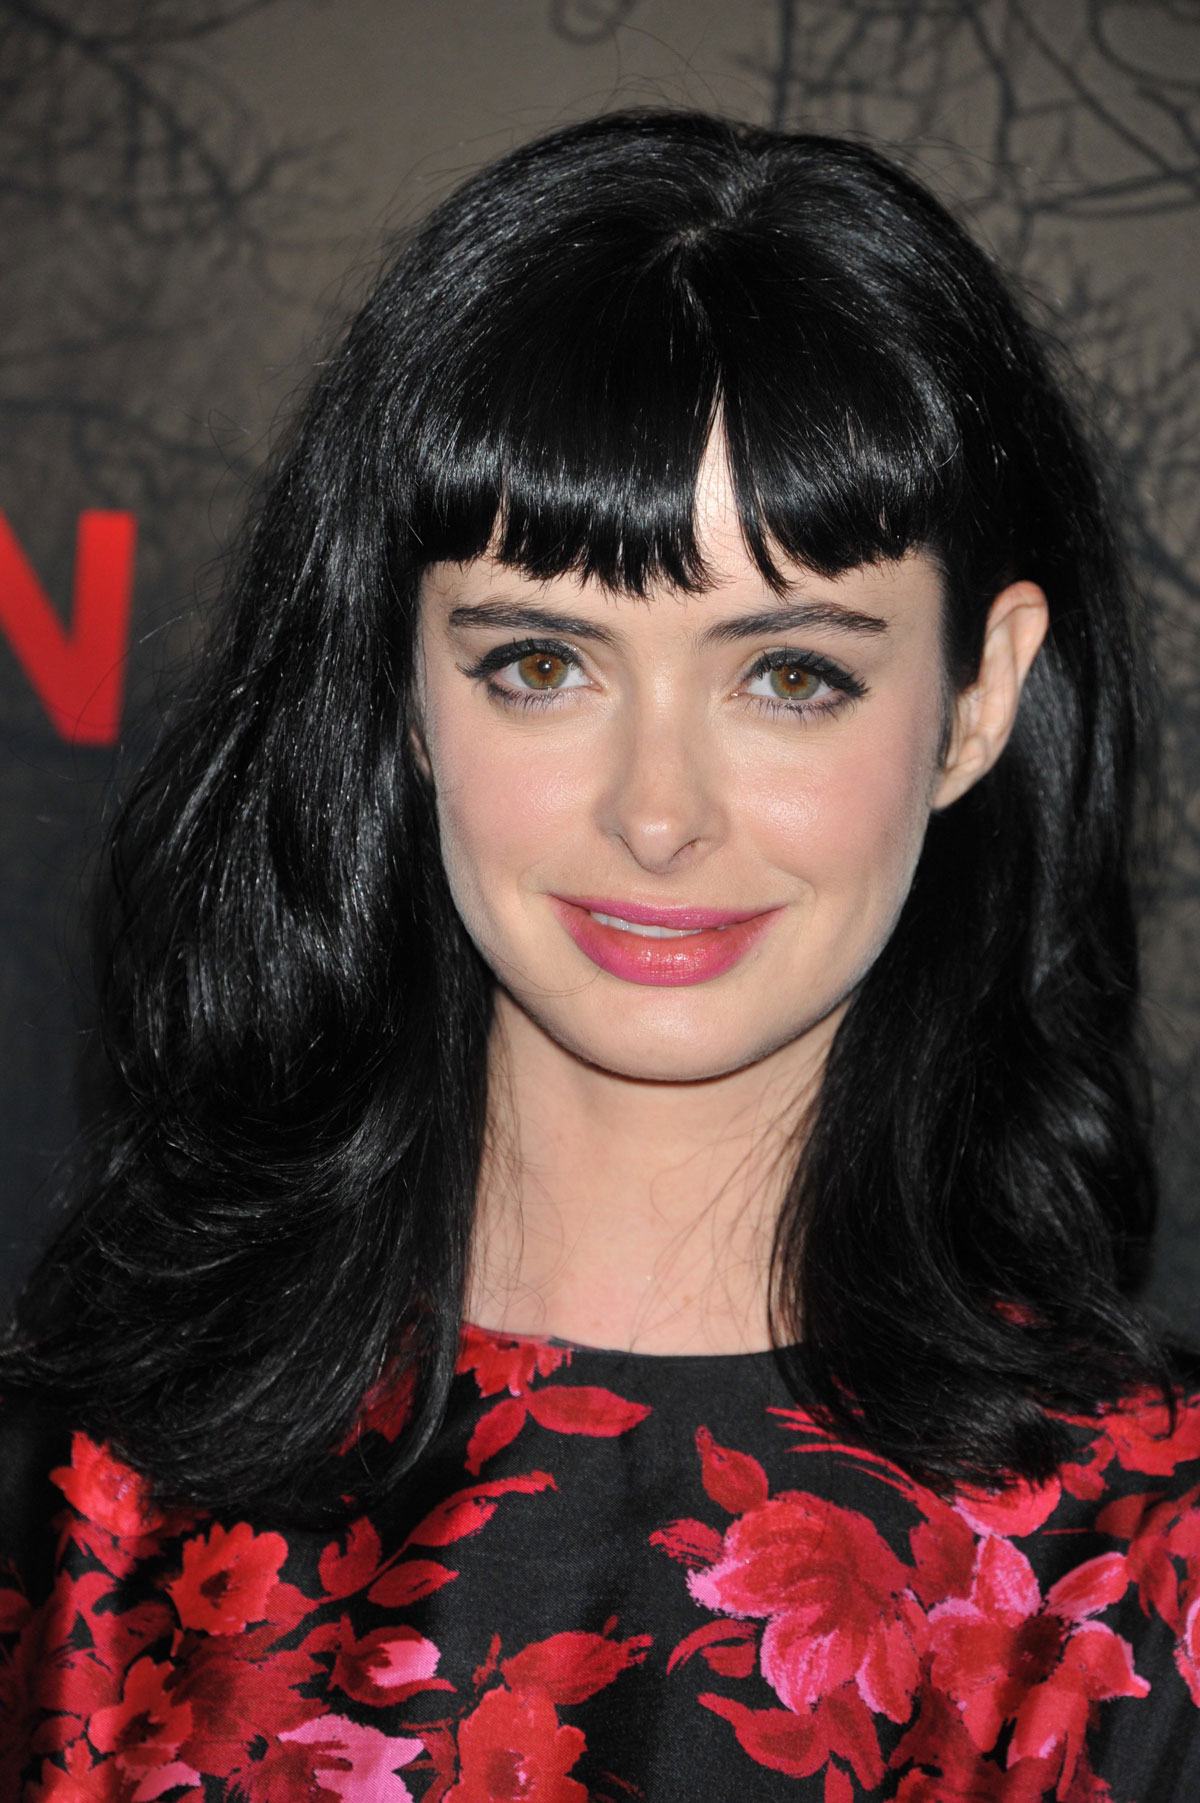 KRYSTEN RITTER at The Raven Premiere in Los Angeles ...